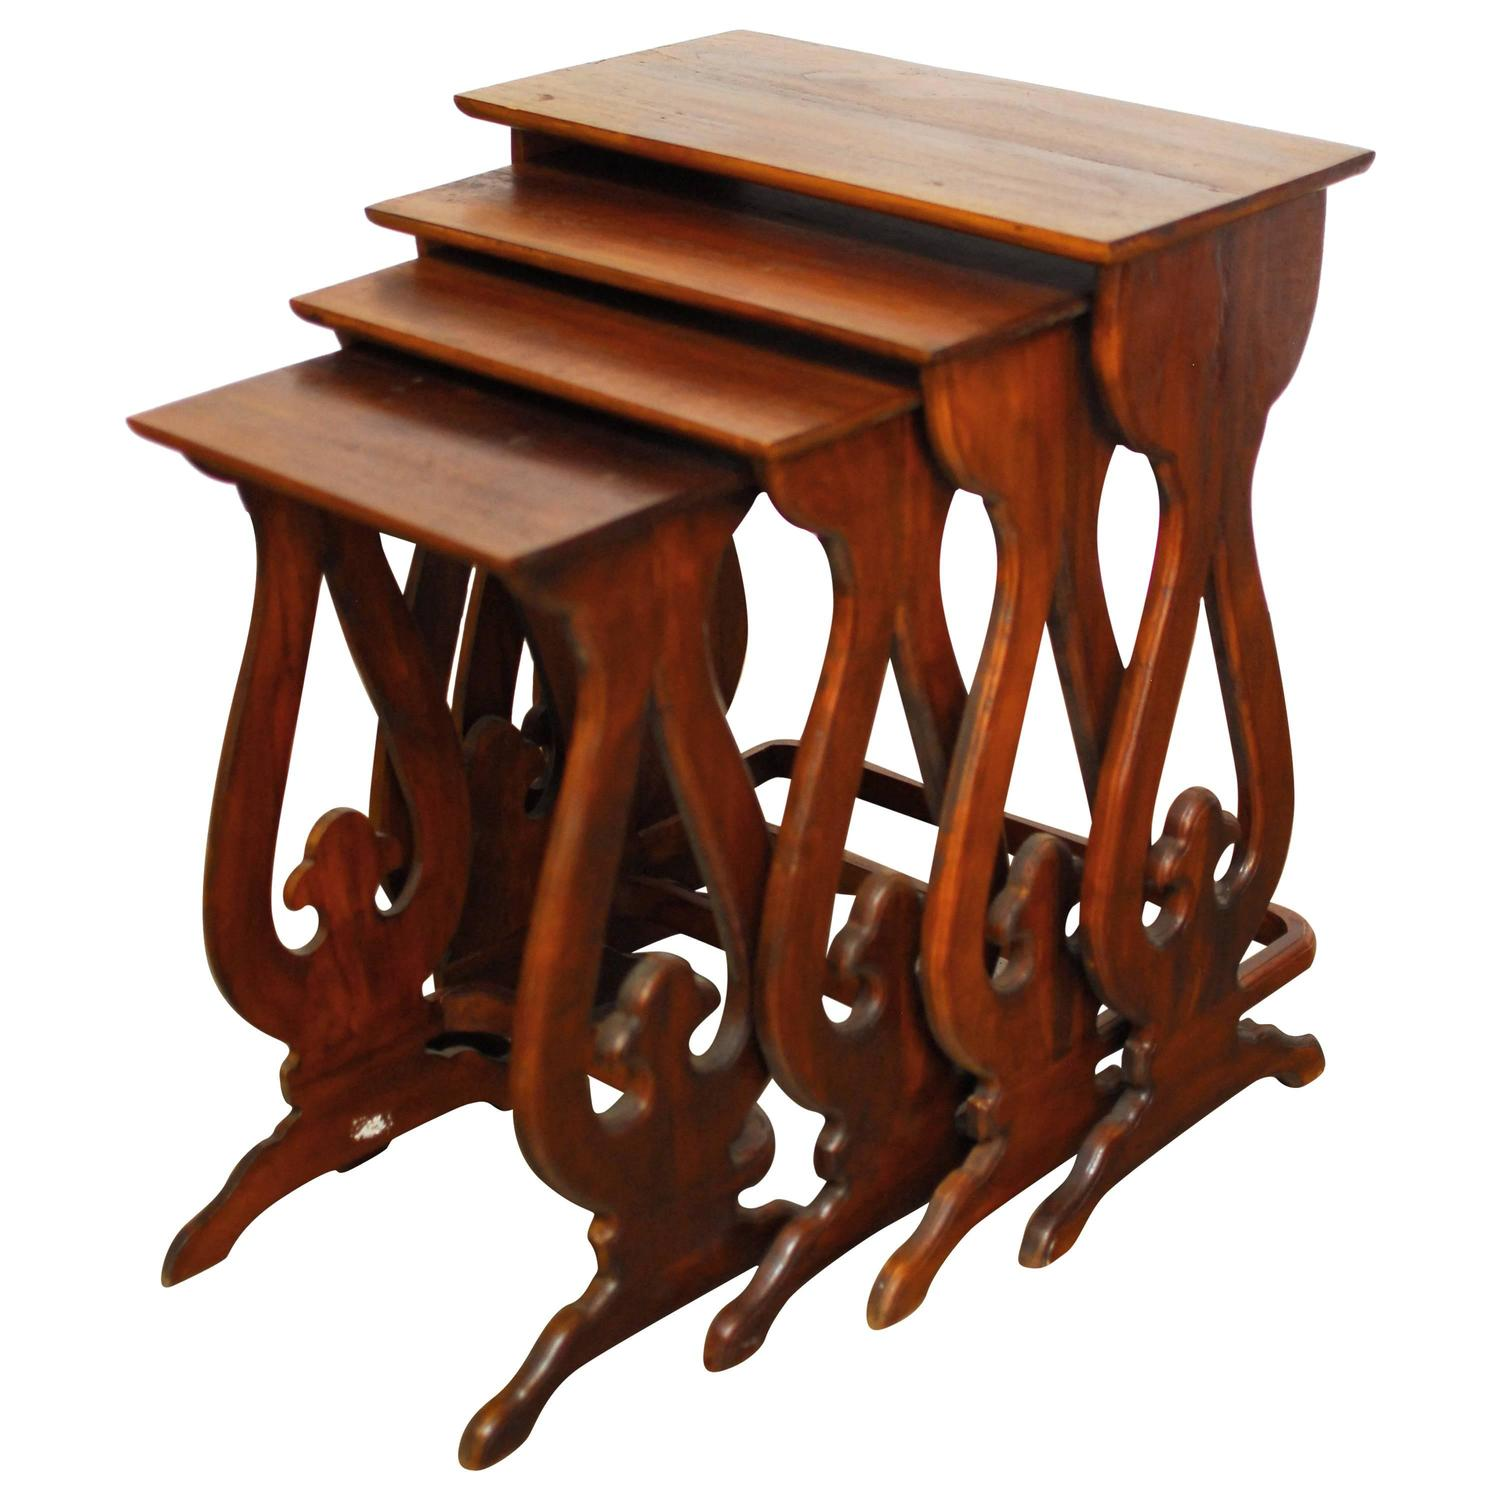 Beau Set Of Four Carved Chinese Nesting Tables